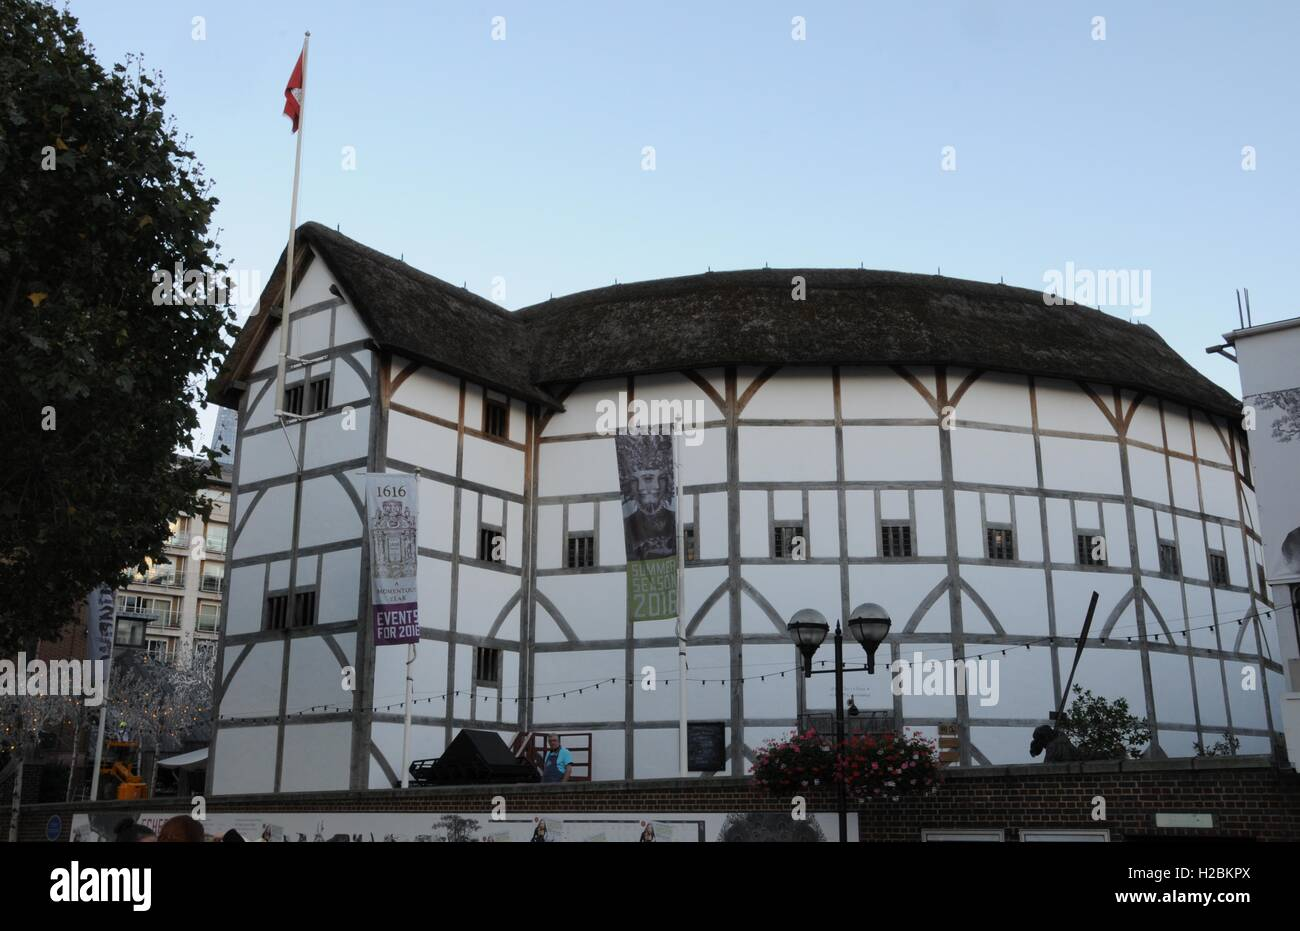 The Globe Theatre, Bankside, London. - Stock Image